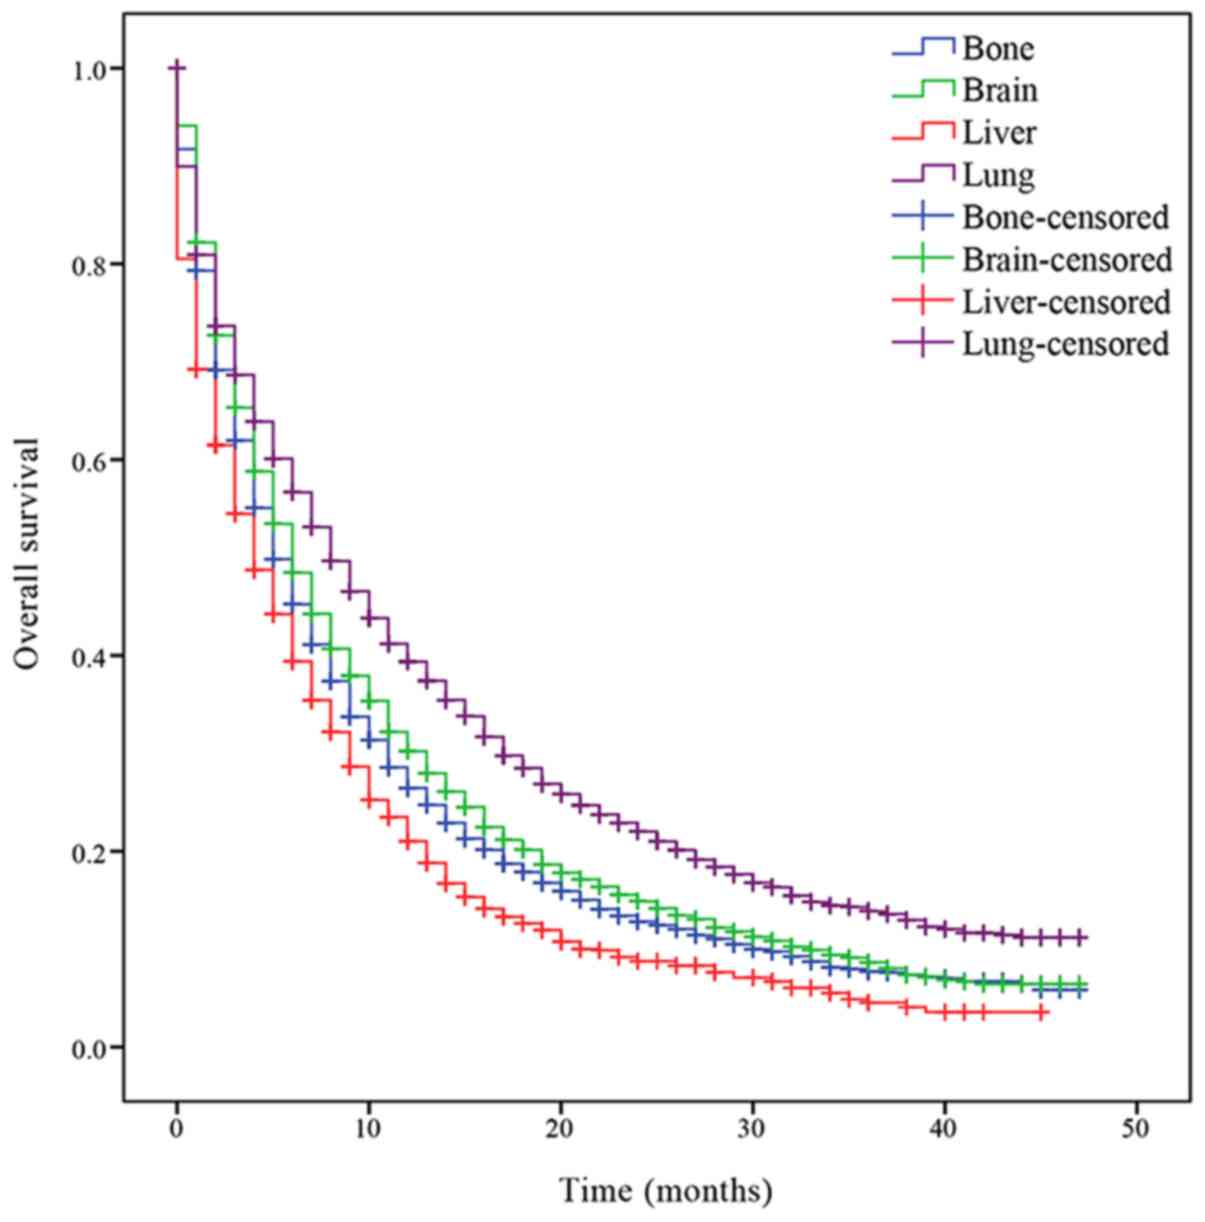 Effects Of Different Metastasis Patterns Surgery And Other Factors On The Prognosis Of Patients With Stage Iv Non Small Cell Lung Cancer A Surveillance Epidemiology And End Results Seer Linked Database Analysis